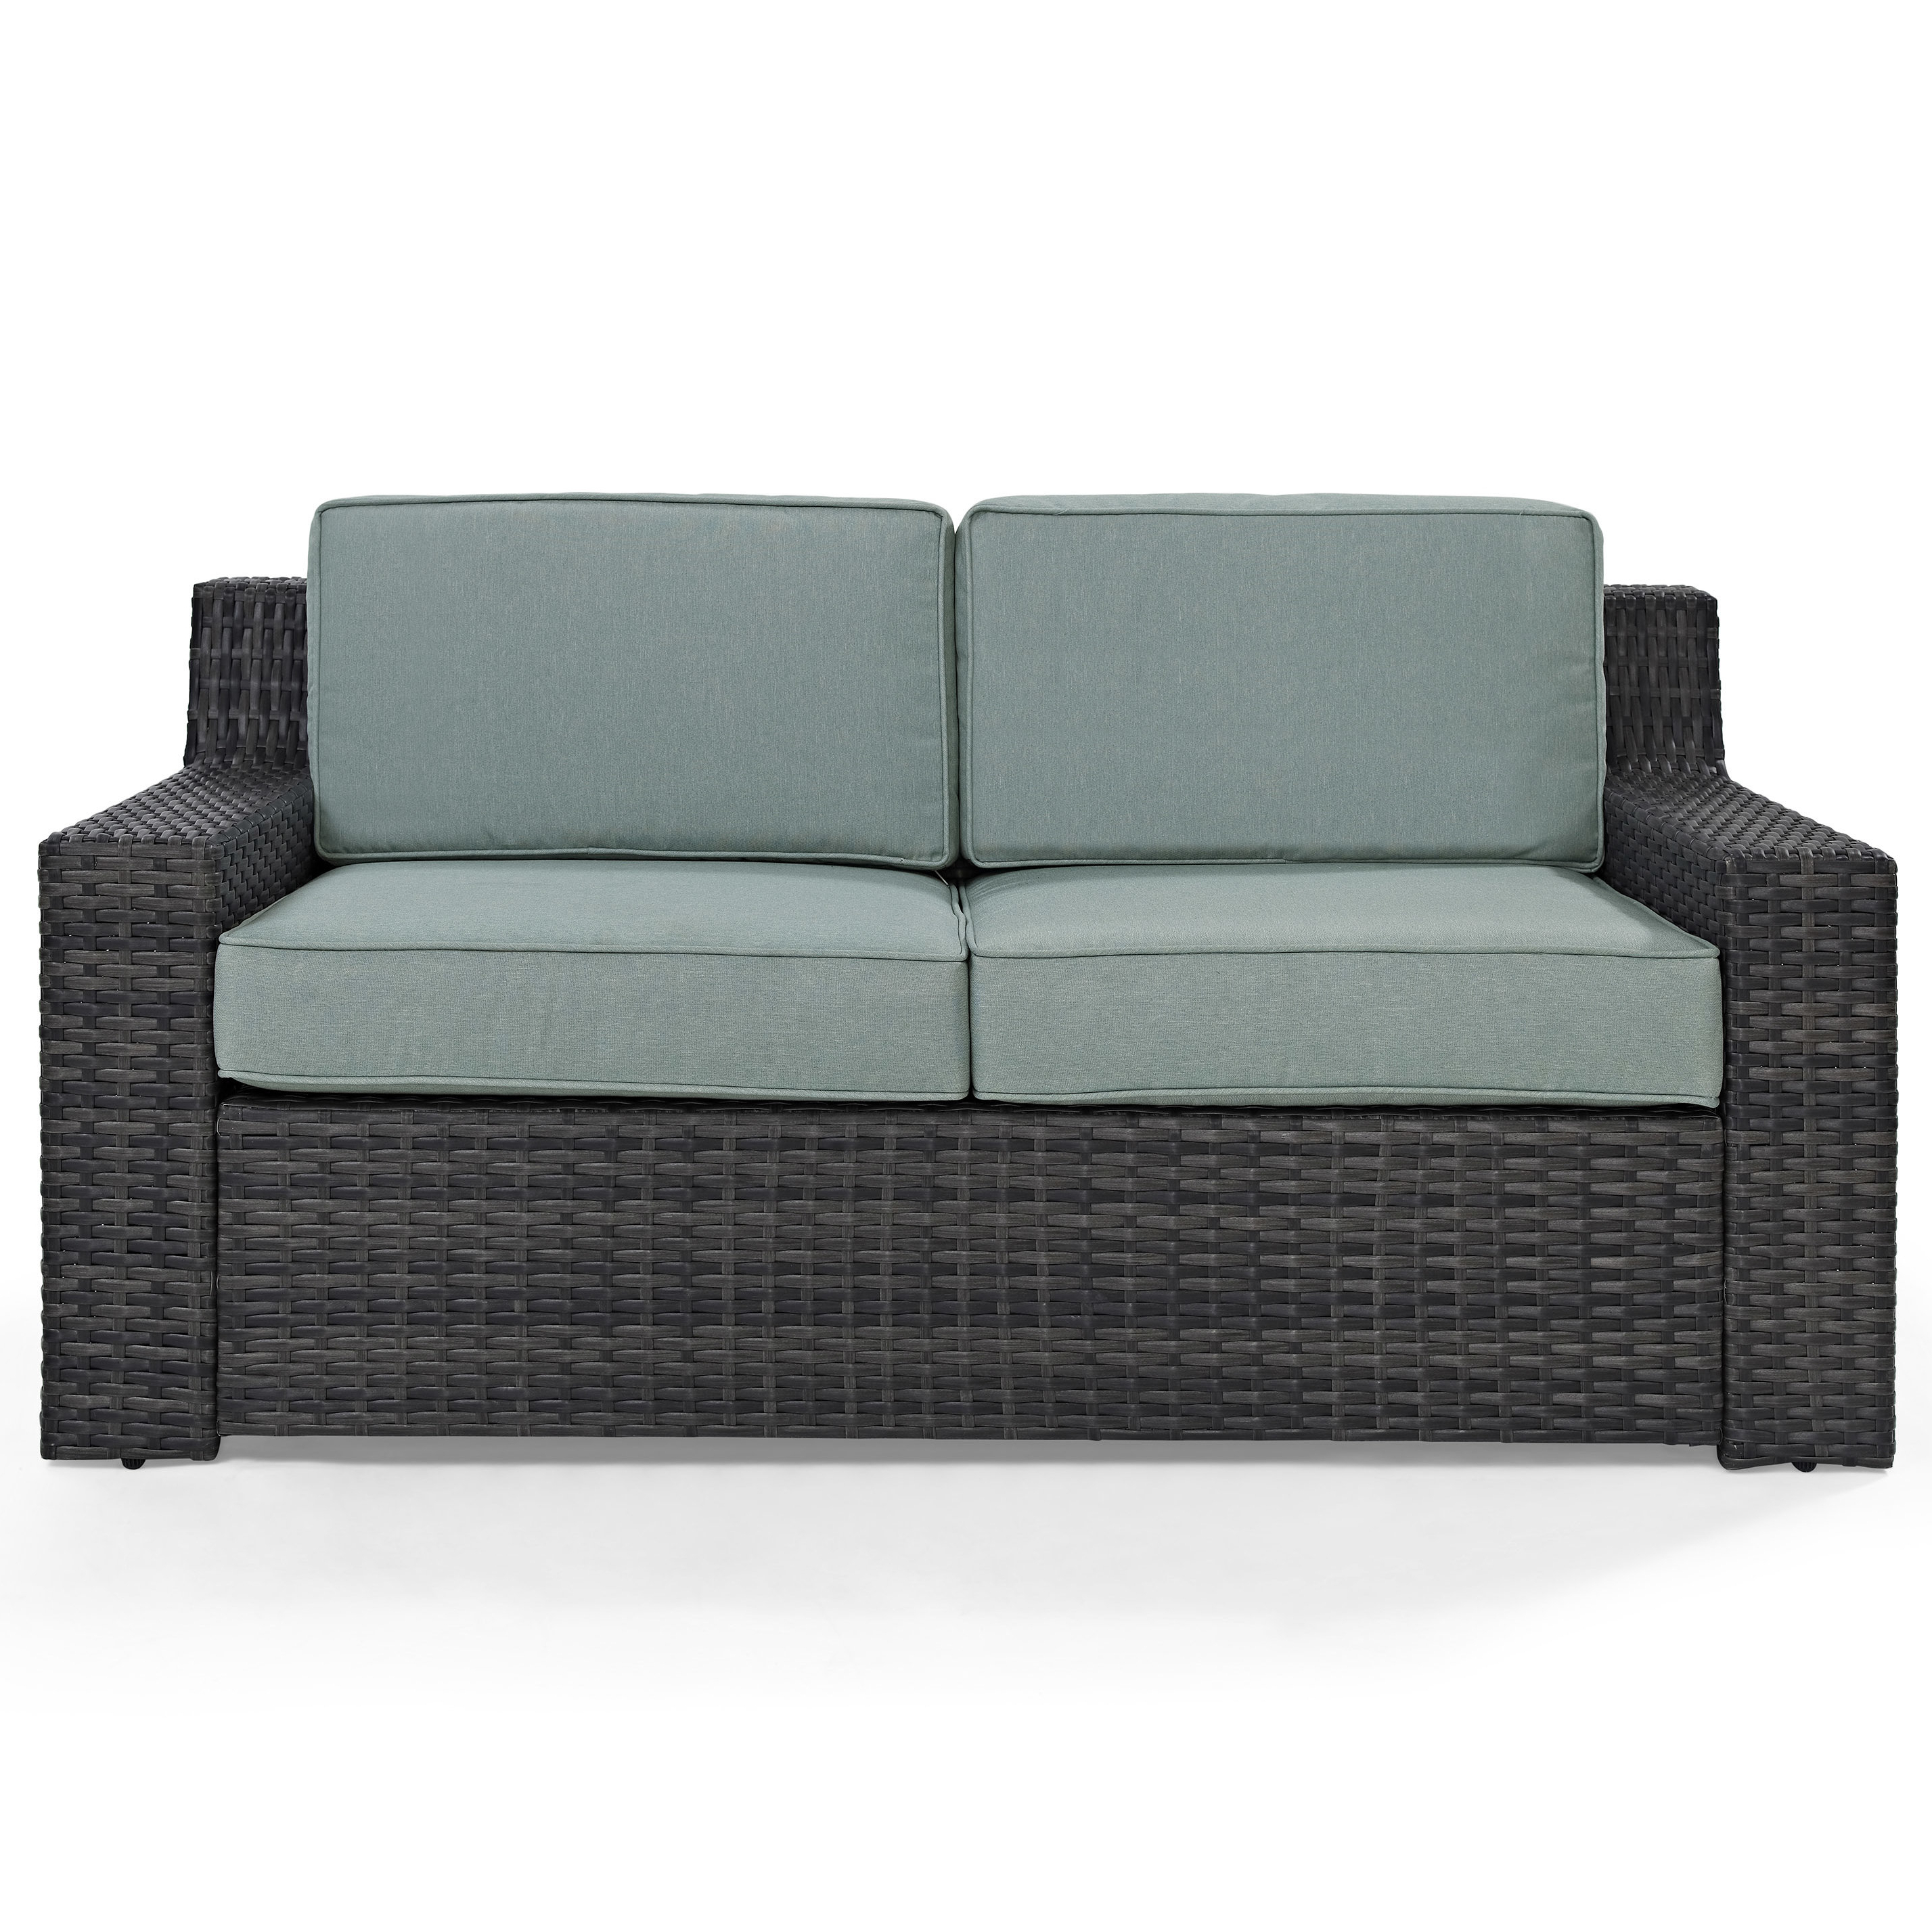 Vallauris Sofa With Cushions For Widely Used Linwood Loveseat With Cushions (Gallery 10 of 20)